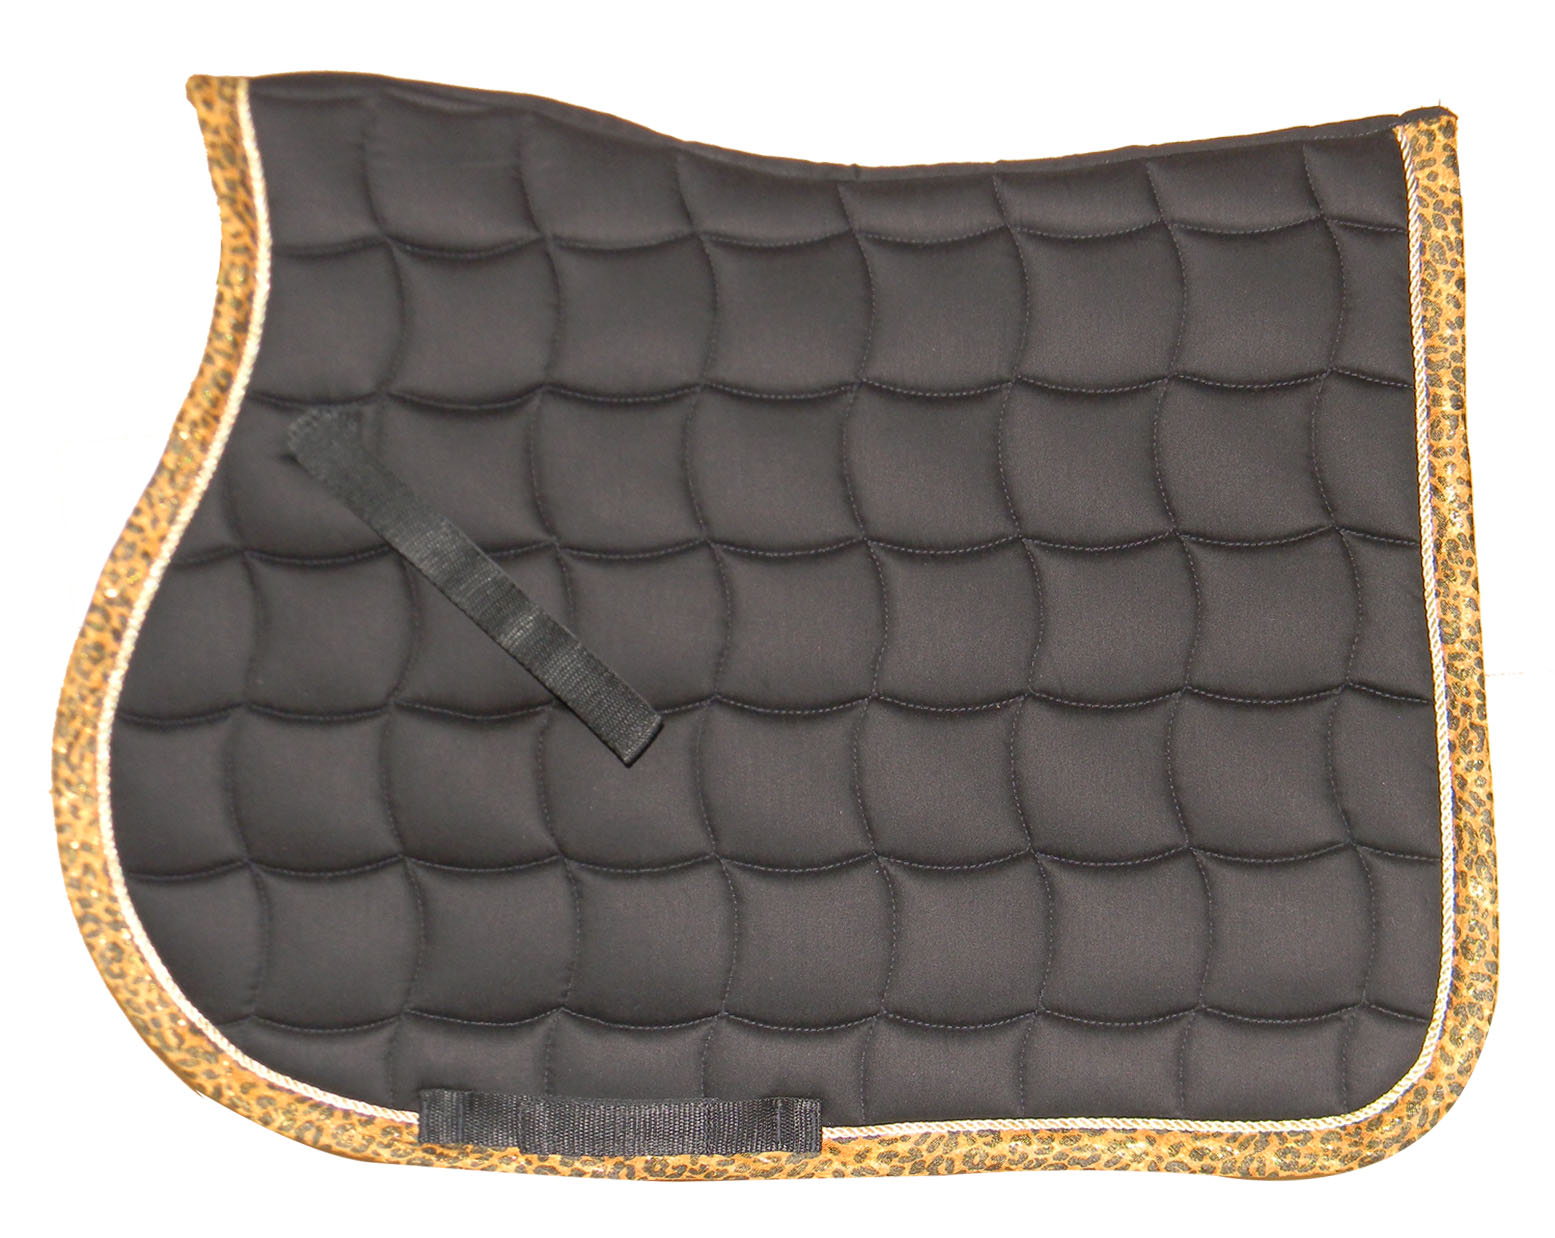 Lami-Cell Leopard All-Purpose Saddle Pad